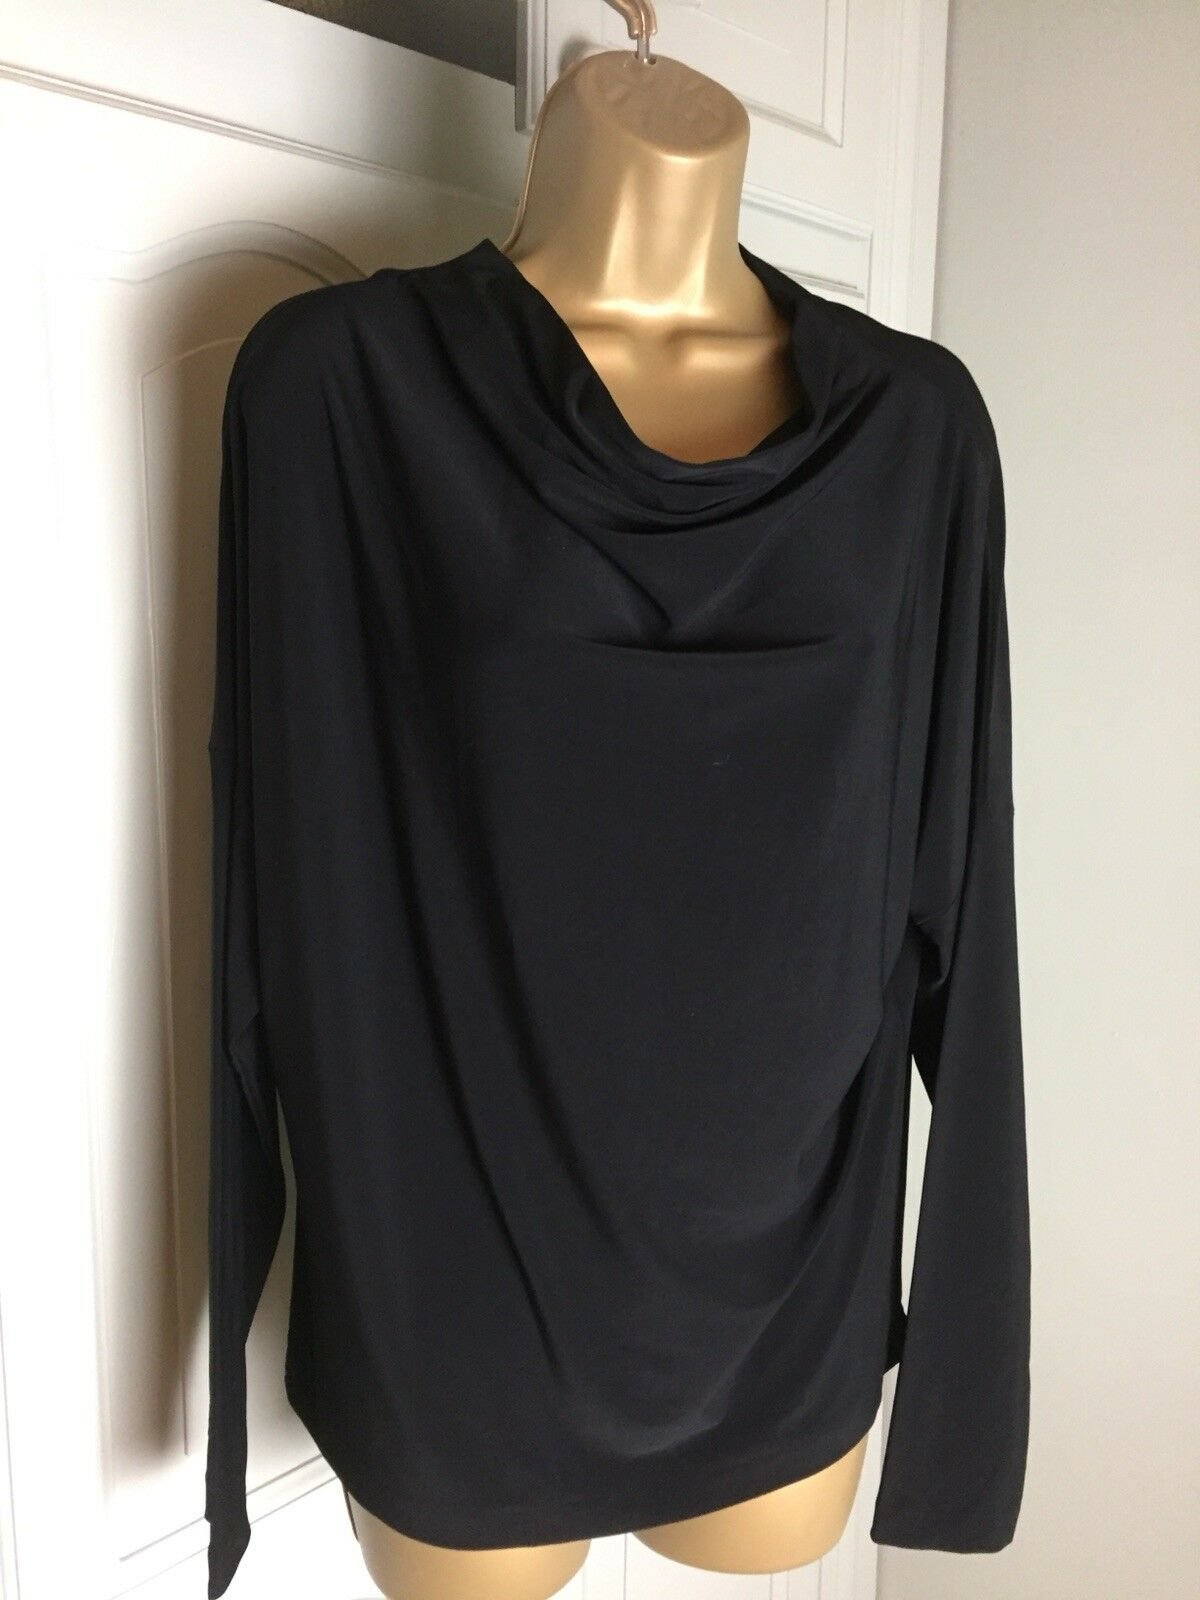 Norma Kamali Ladies schwarz Dolman Top Super Stretchy Long Sleeve Größe Small